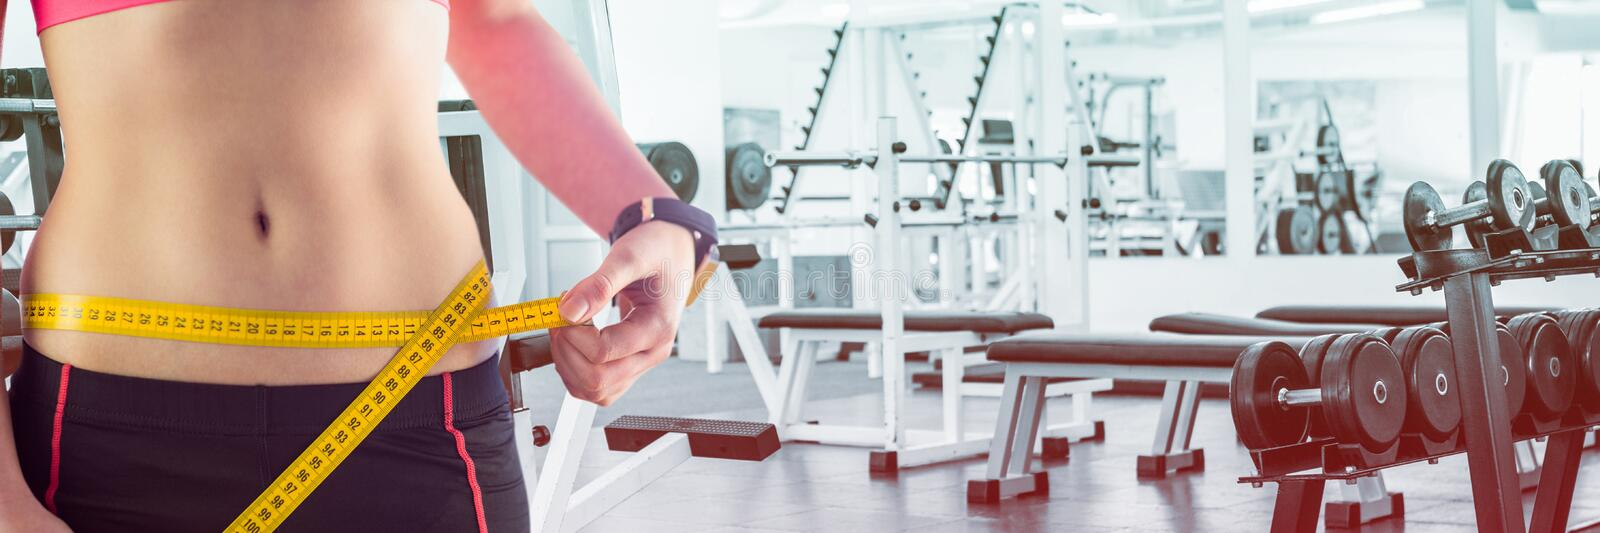 Fit Woman with measuring tape around waist in fitness studio royalty free stock photos